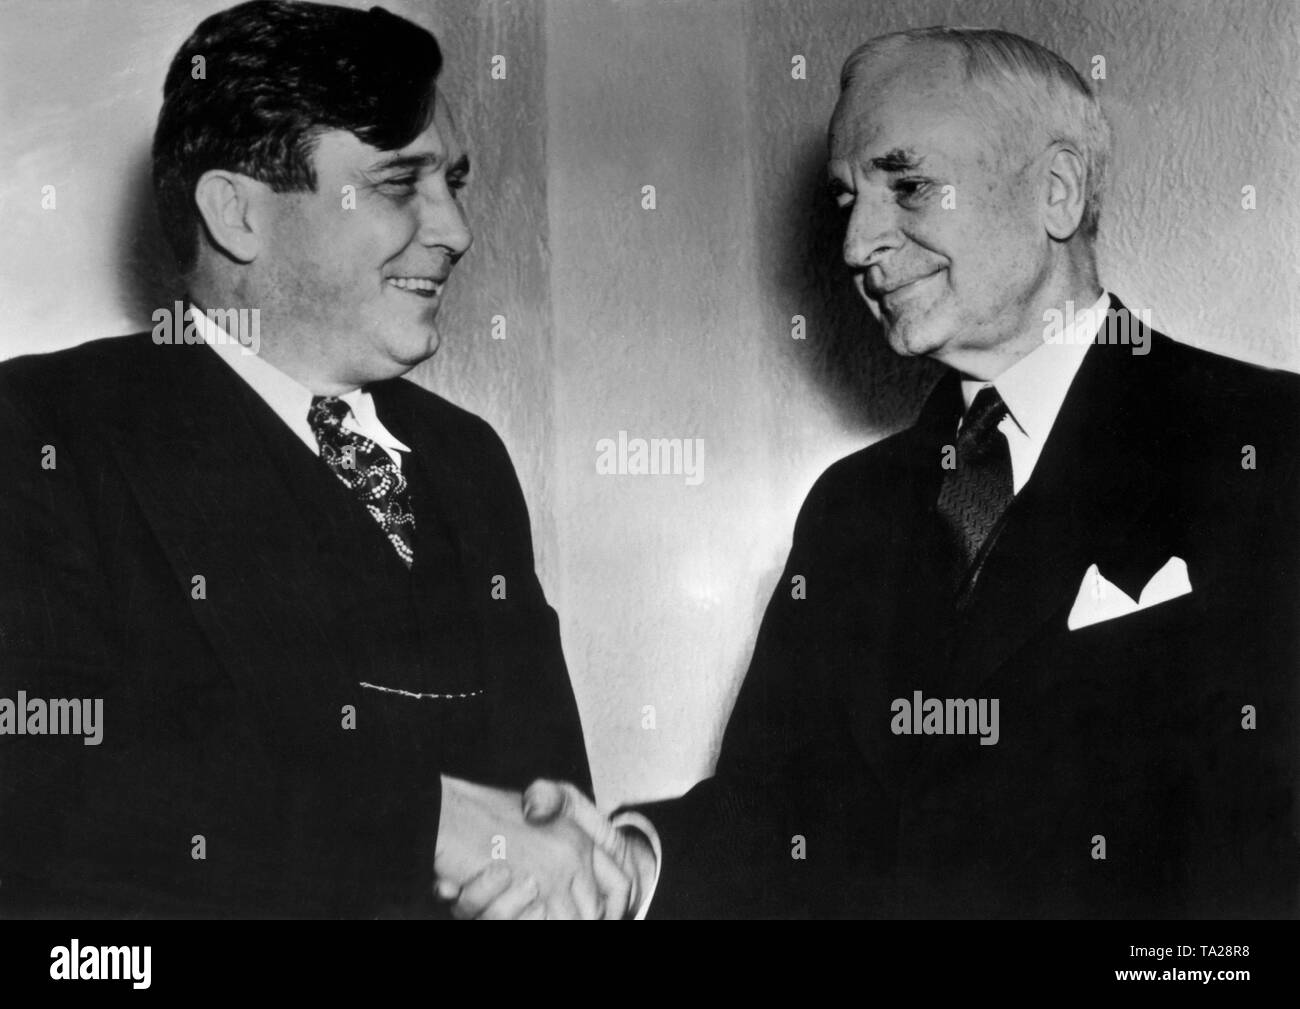 Cordell Hull (right), US Secretary of State and Nobel Peace Prize winner in 1945, greets the Republican presidential candidate in 1940, Wendell L. Willkie, before a joint meeting. - Stock Image